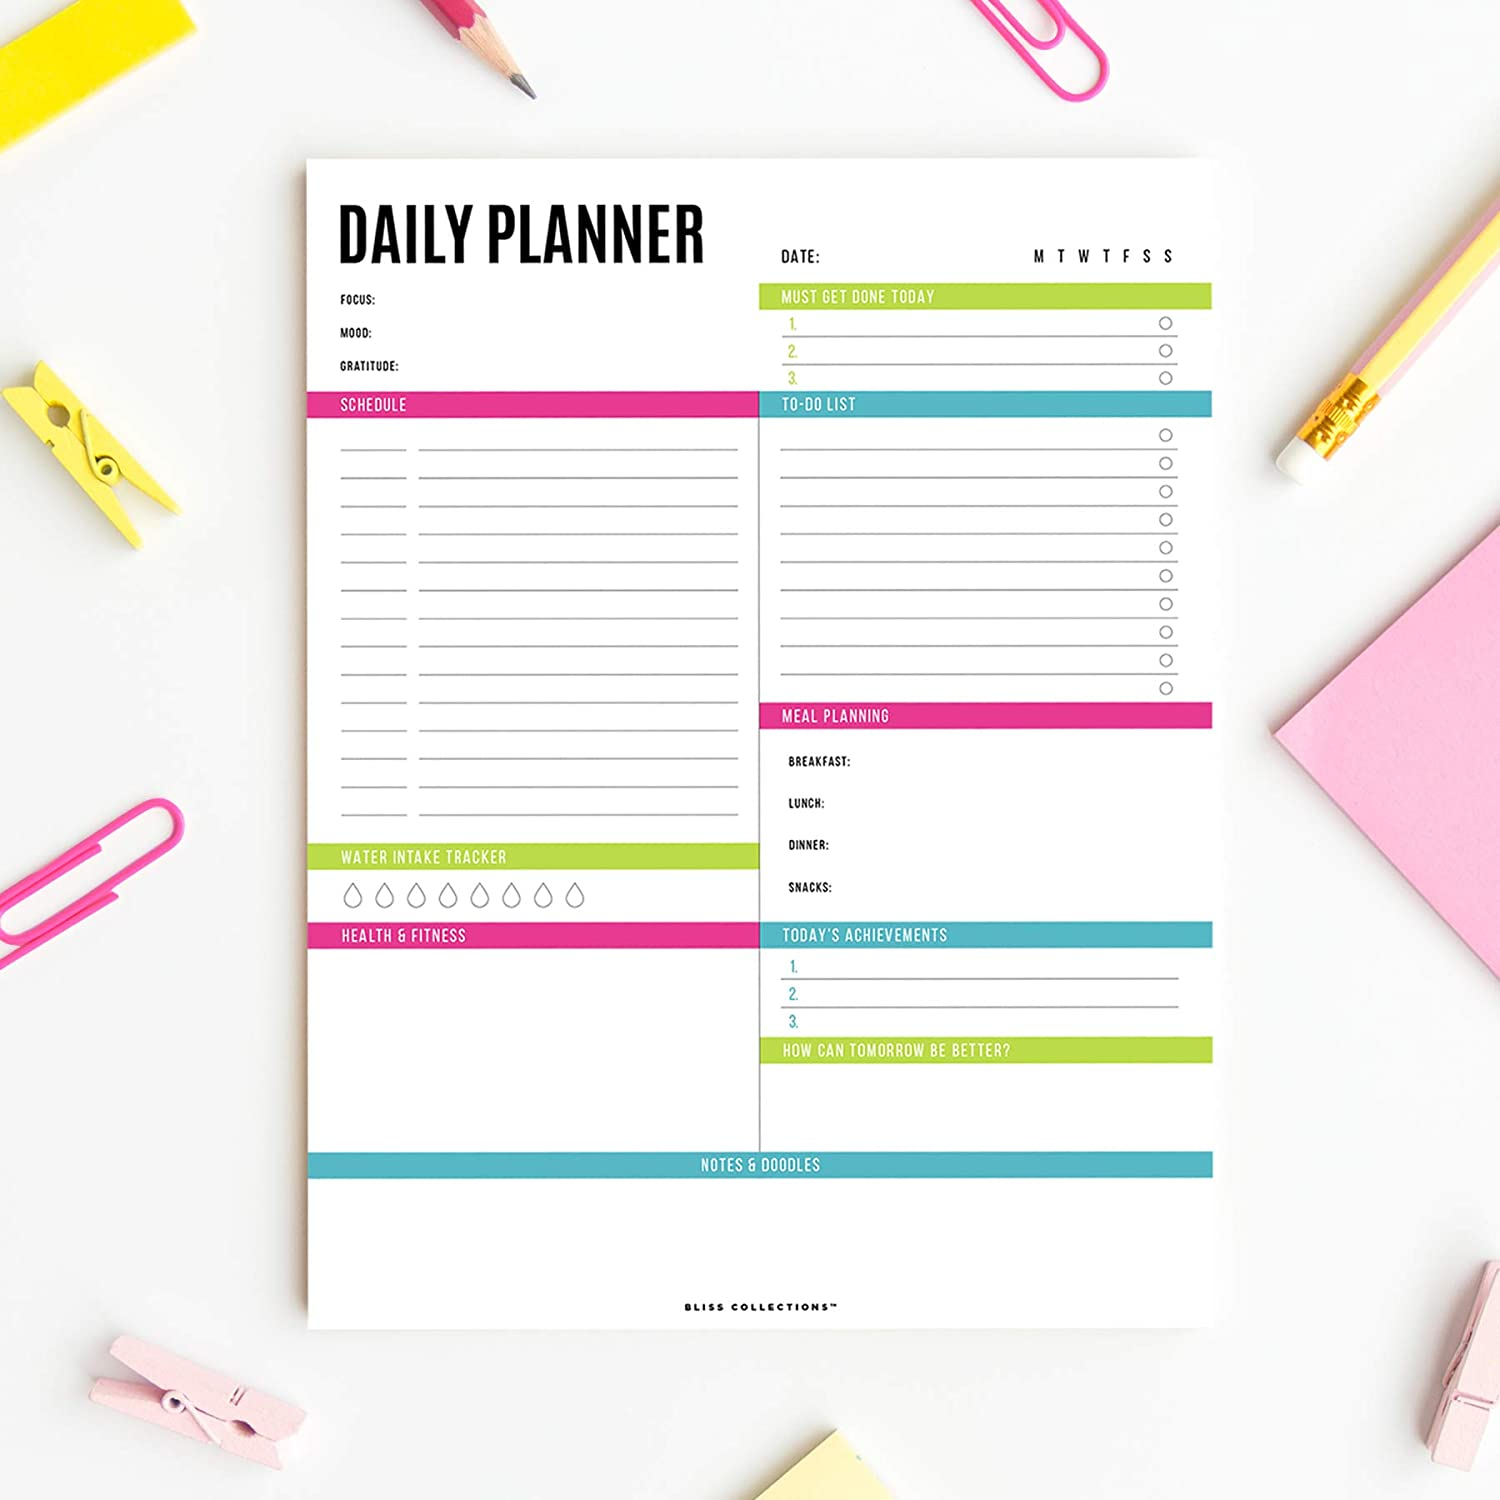 Bliss Collections Daily Planner with 50 Undated 8.5 x 11 Tear-Off Sheets, Vibrant Calendar, Organizer, Scheduler, Productivity Tracker, Meal Prep, Organize Tasks, Goals, Notes, Ideas, To Do Lists